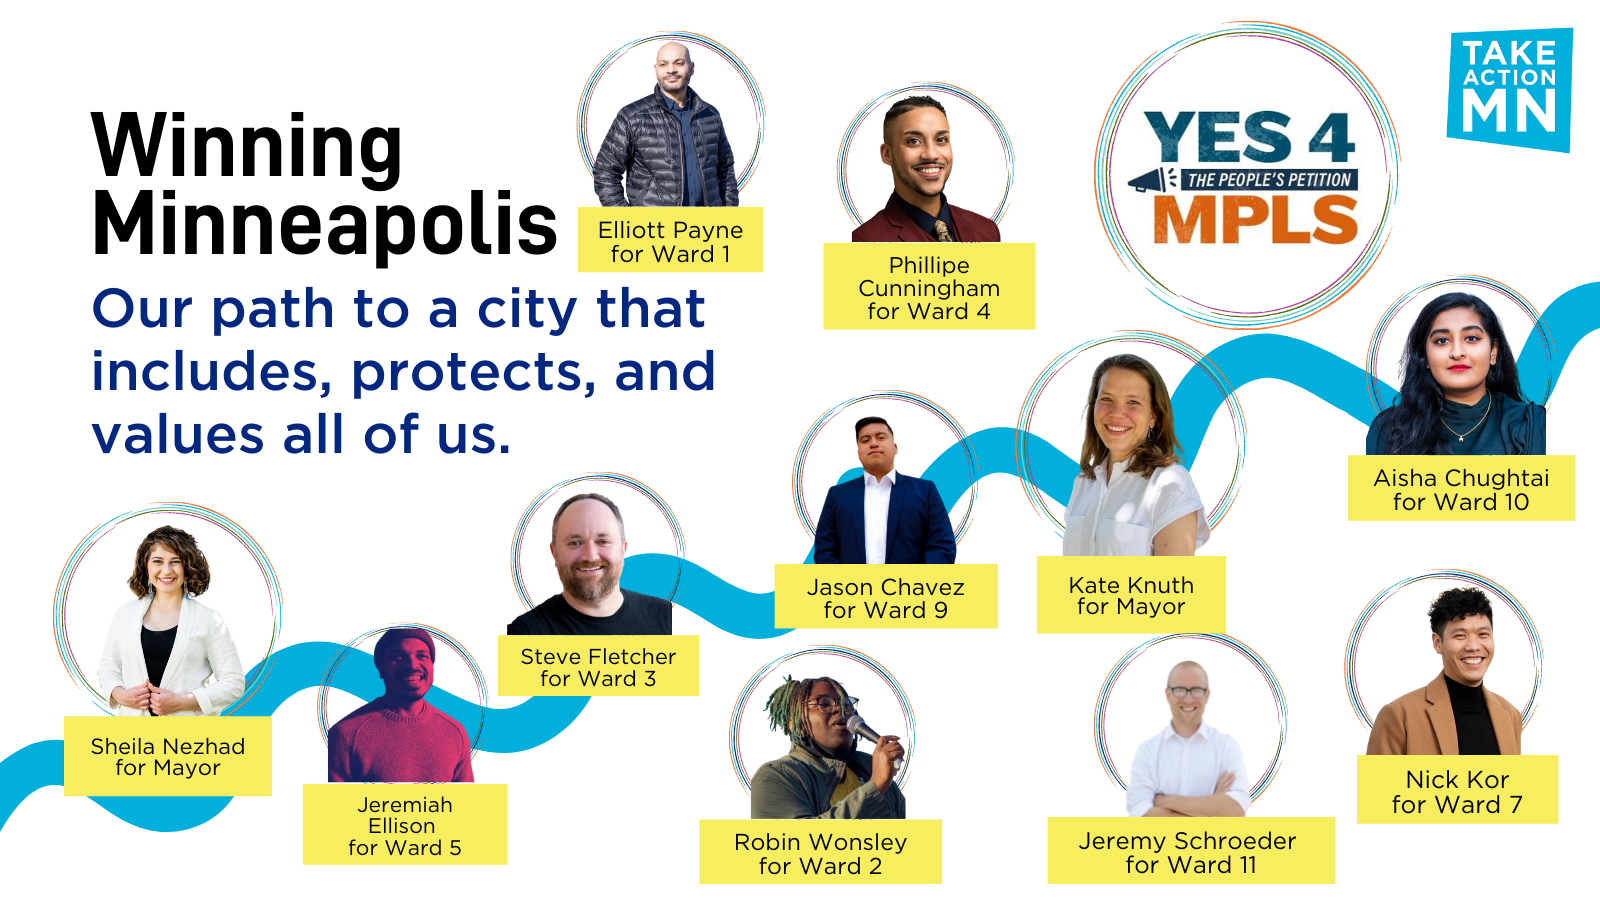 """Blue and yellow on a white background. """"Winning Minneapolis: Our path to a city that includes, protects, and values all of us."""" Includes photos and names of candidates with their wards and the Yes 4 Minneapolis and TakeAction Minnesota logos."""